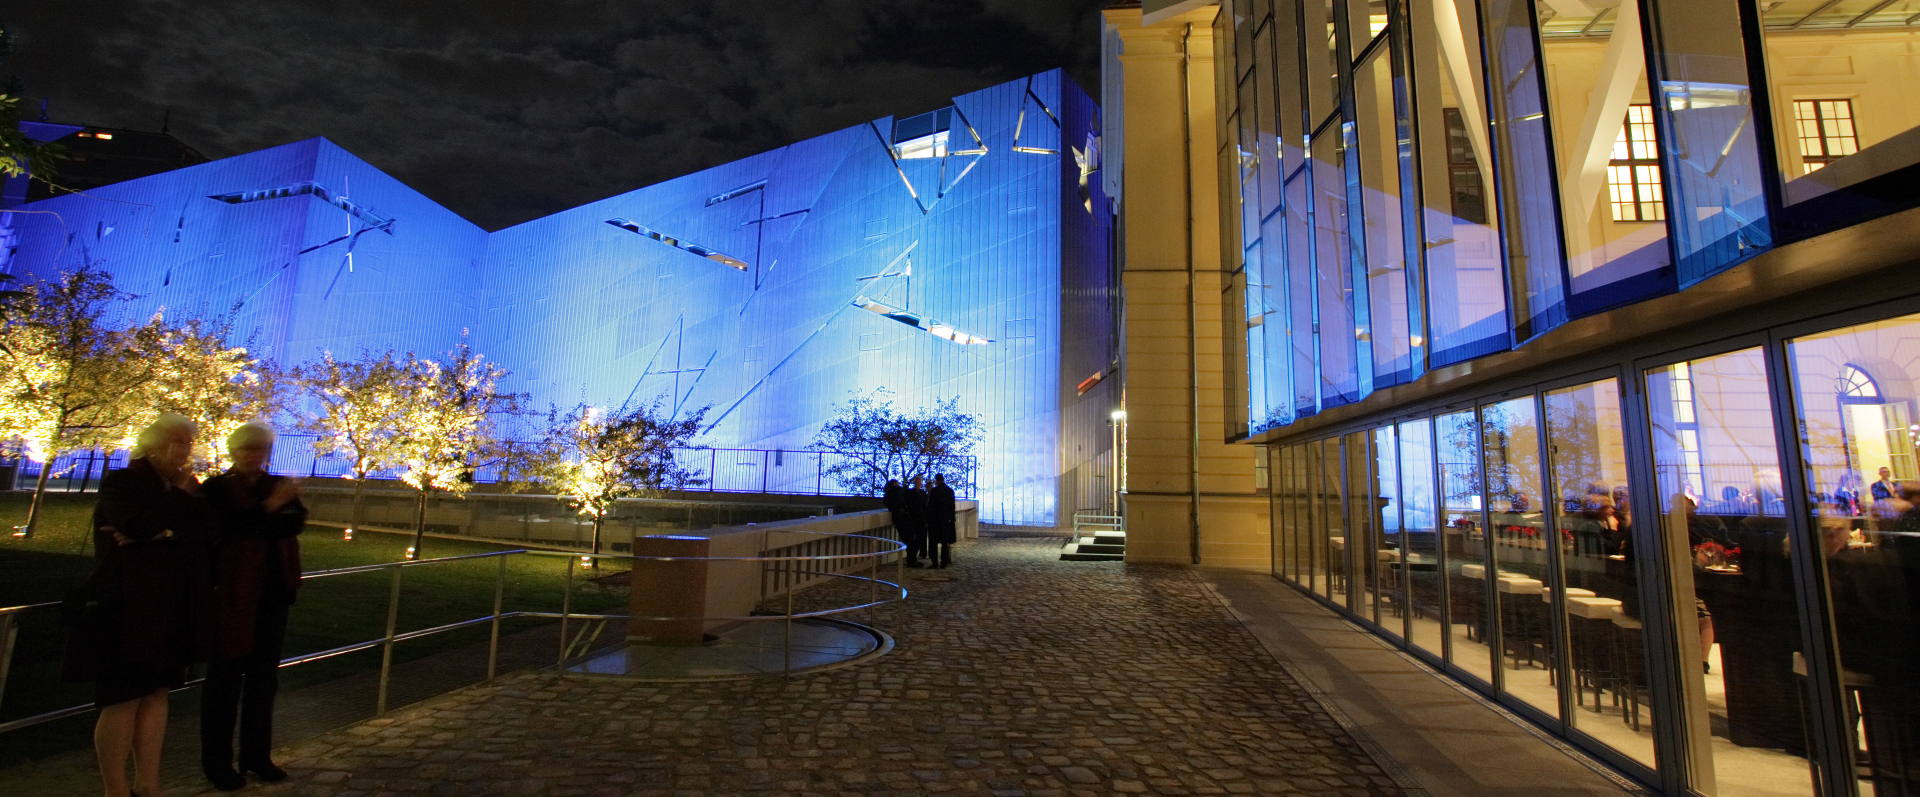 Libeskind Building and the Glass Courtyard at night (illuminated by blue light)